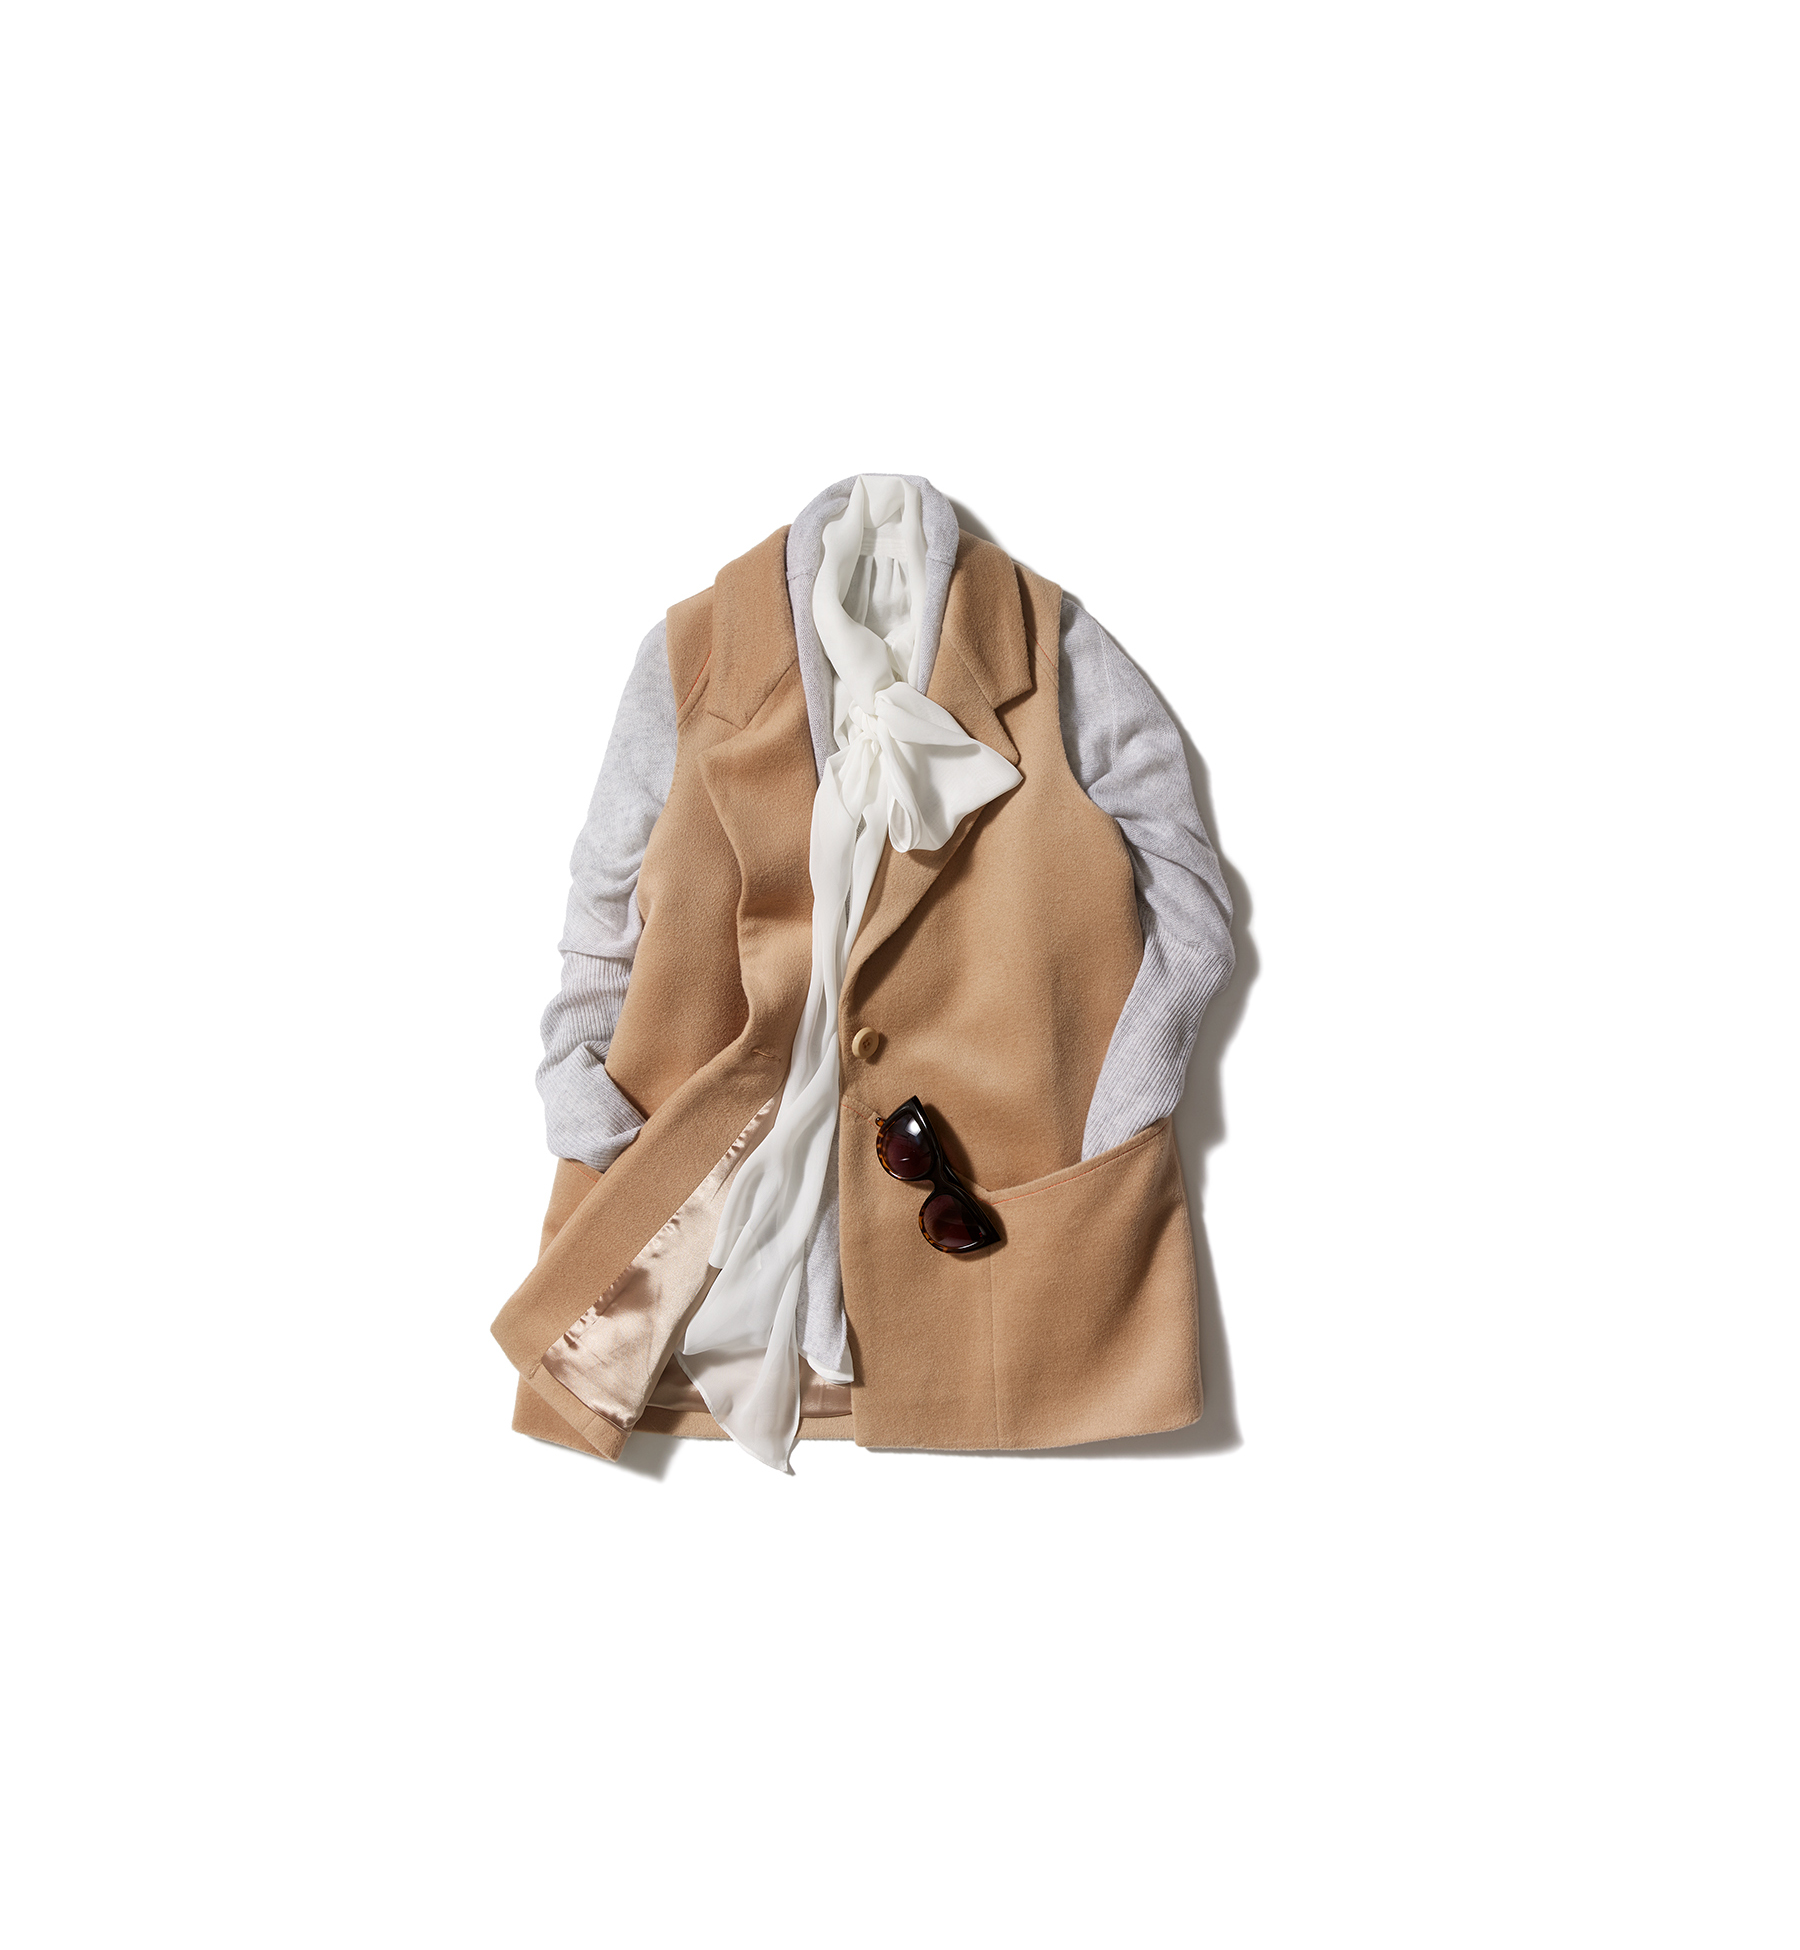 Vest with cardigan and blouse (TOUT)